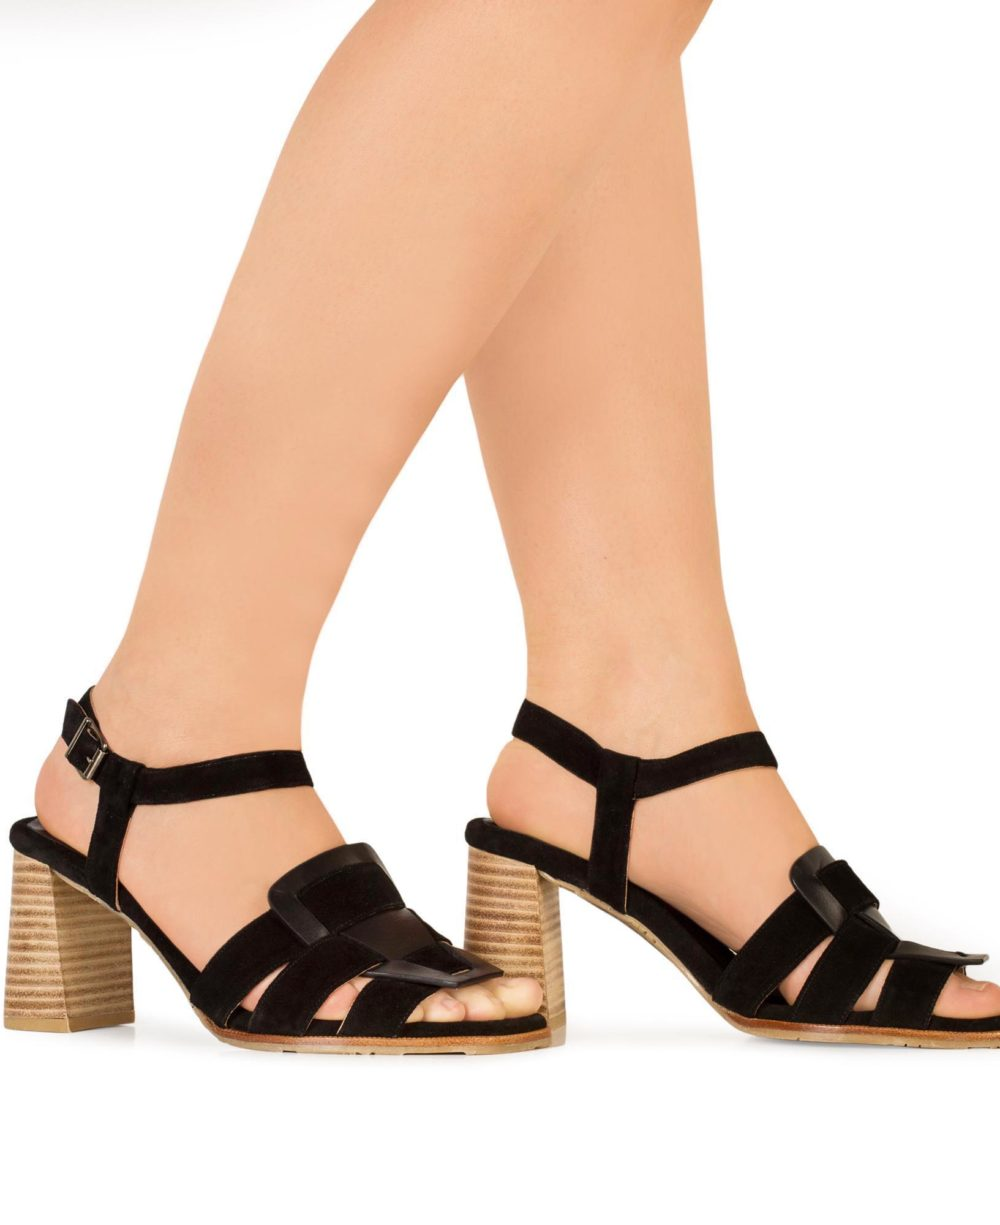 P-3931 Black Madison Velour Leather Sandals by Paco Gil Piernas